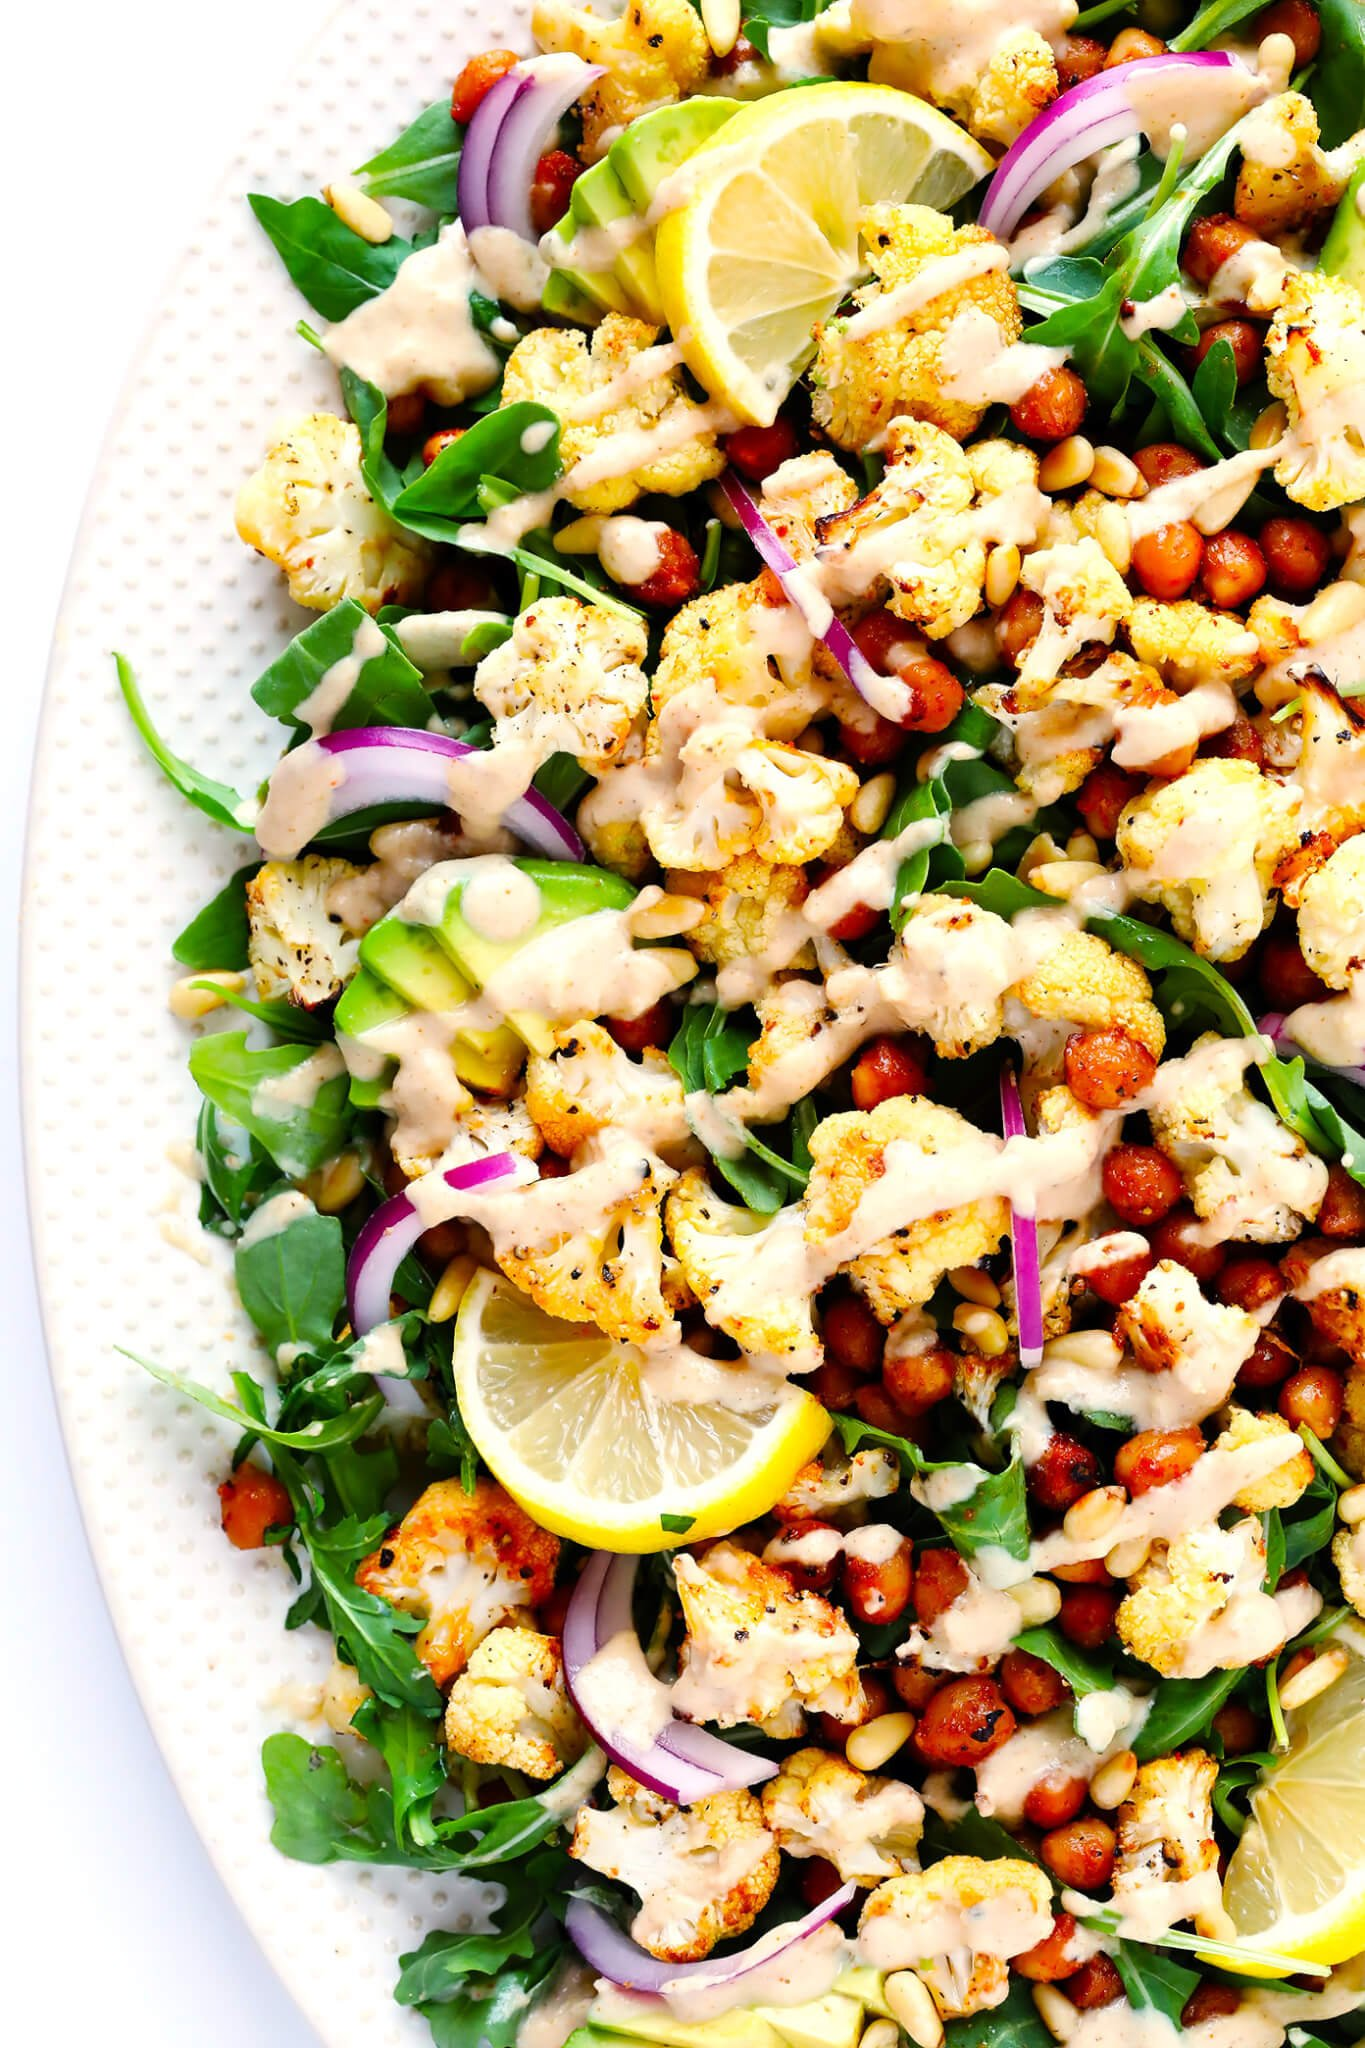 Roasted Cauliflower, Chickpea and Arugula Salad Recipe with Tahini Dressing | 20 Vegetarian Dinner Ideas